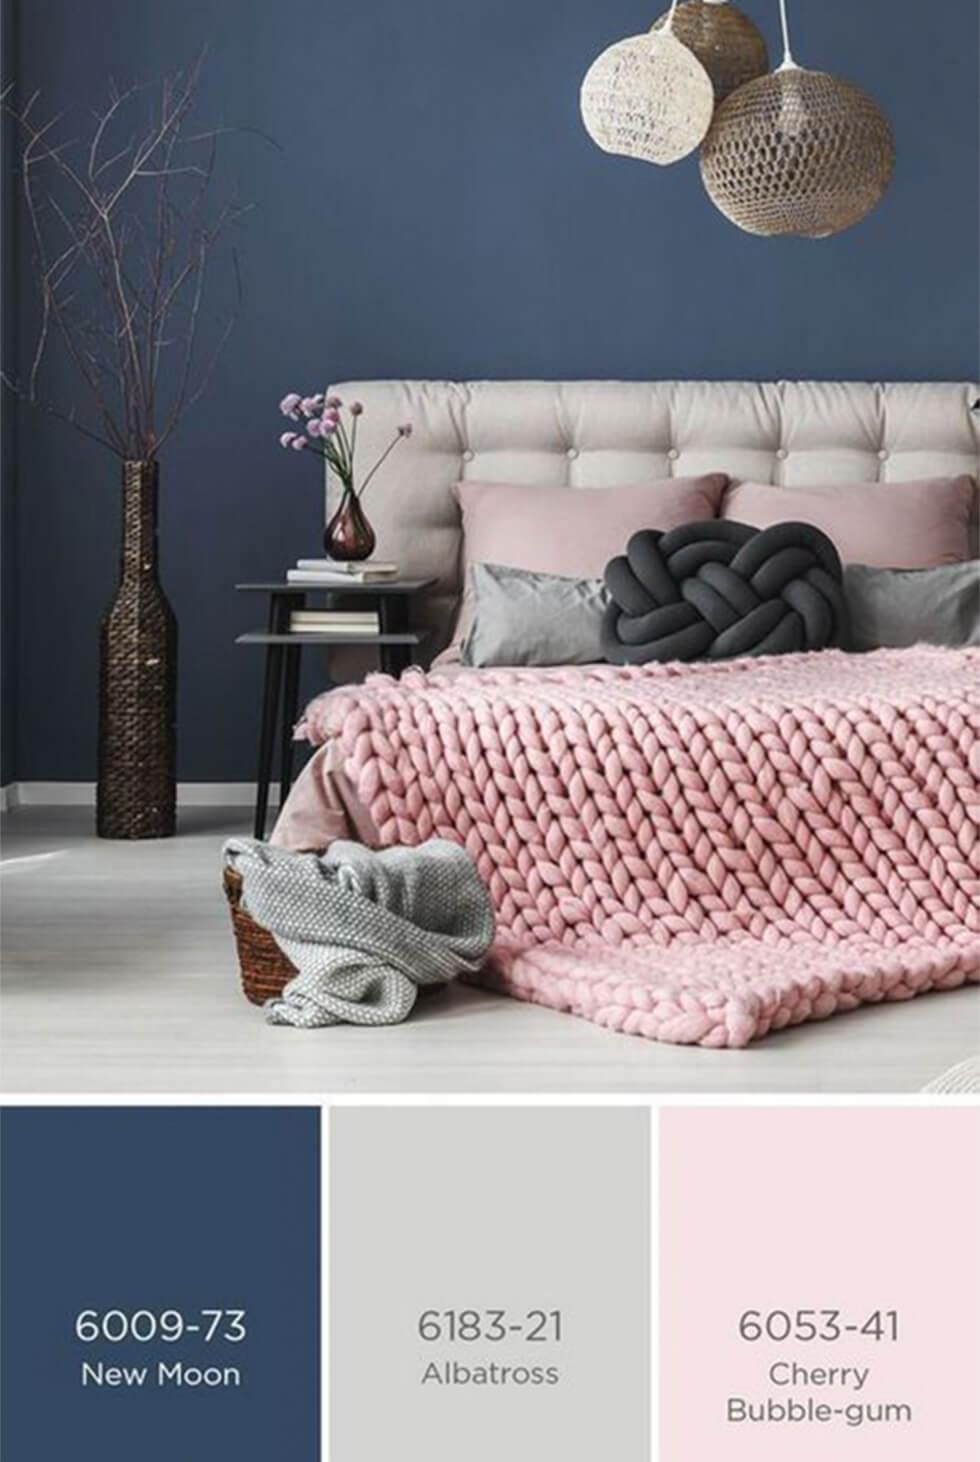 A contemporary blue bedroom with grey and light pink pastel hues